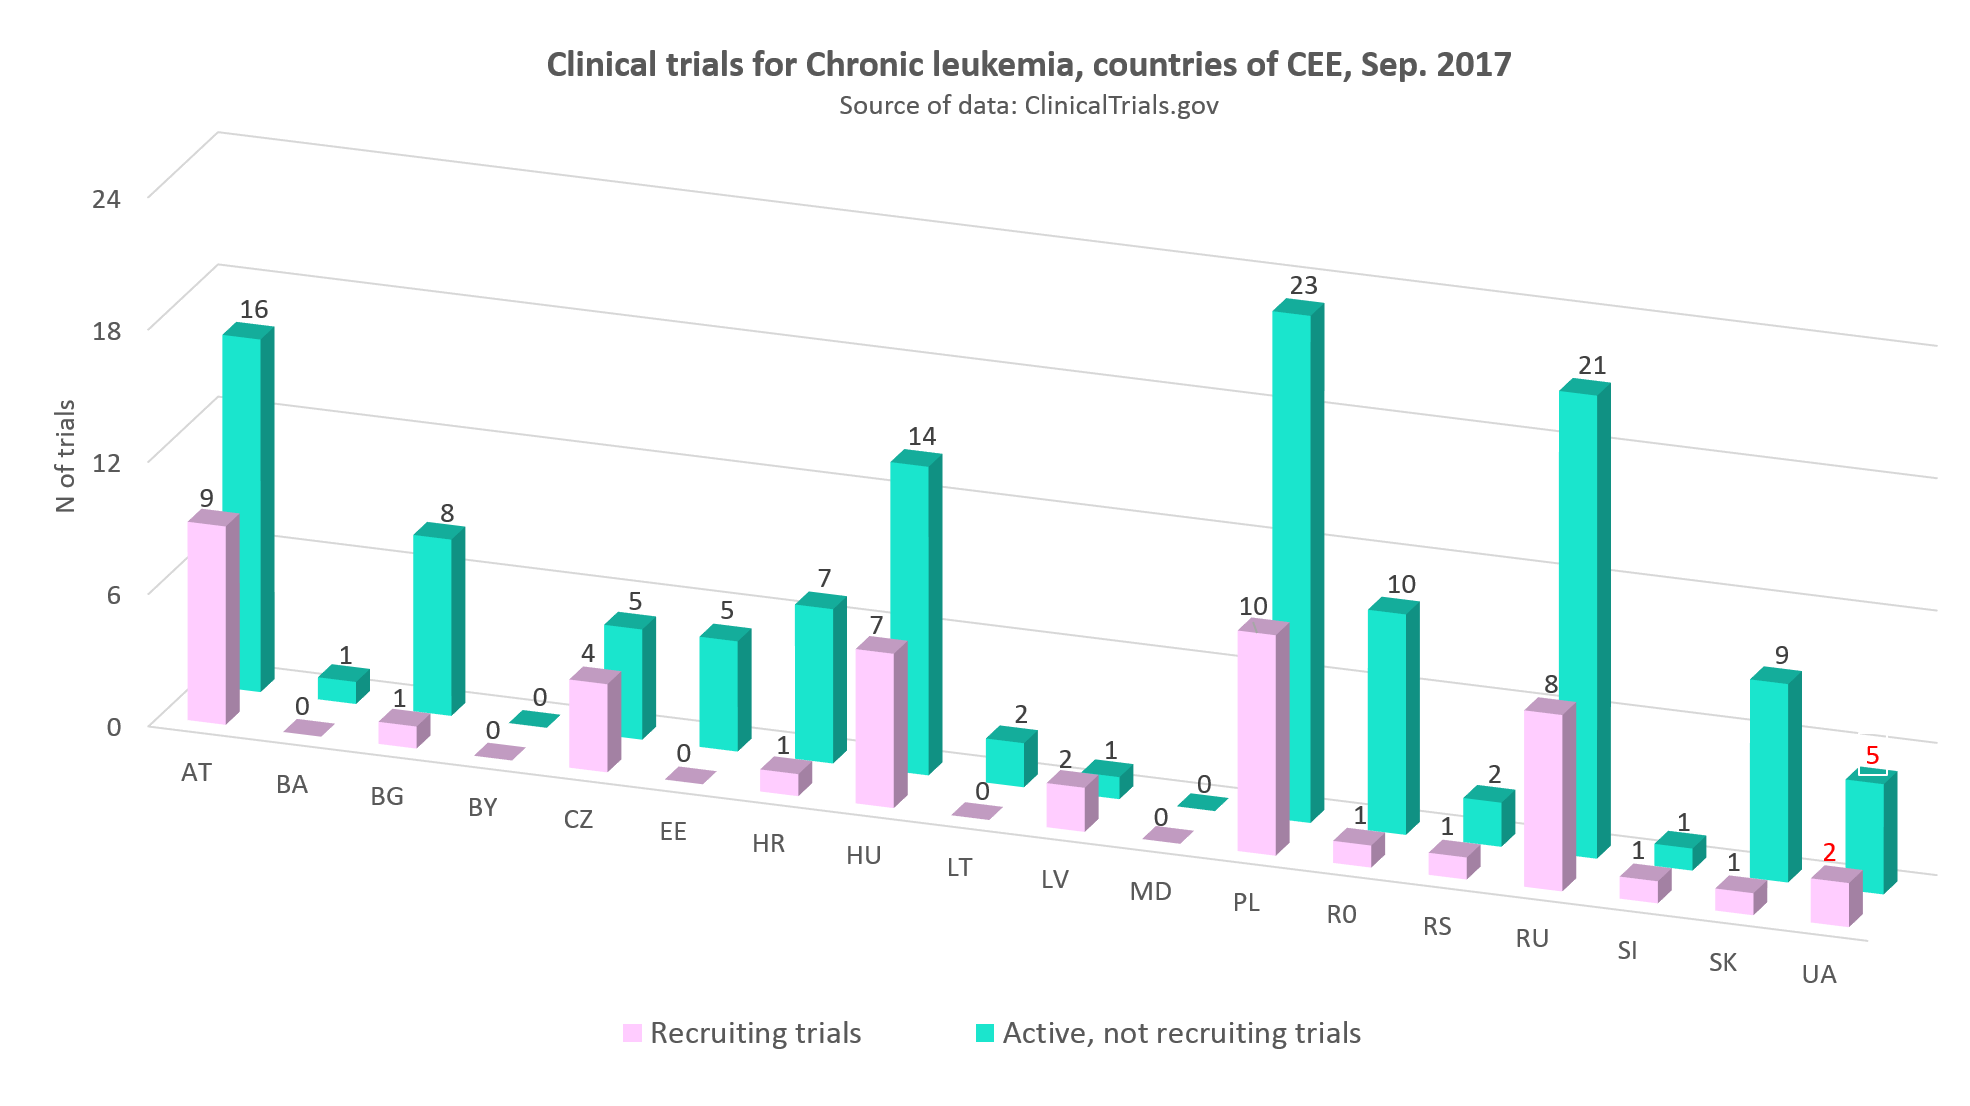 Clinical trials for chronic leukemia in countries of CEE, September 2017